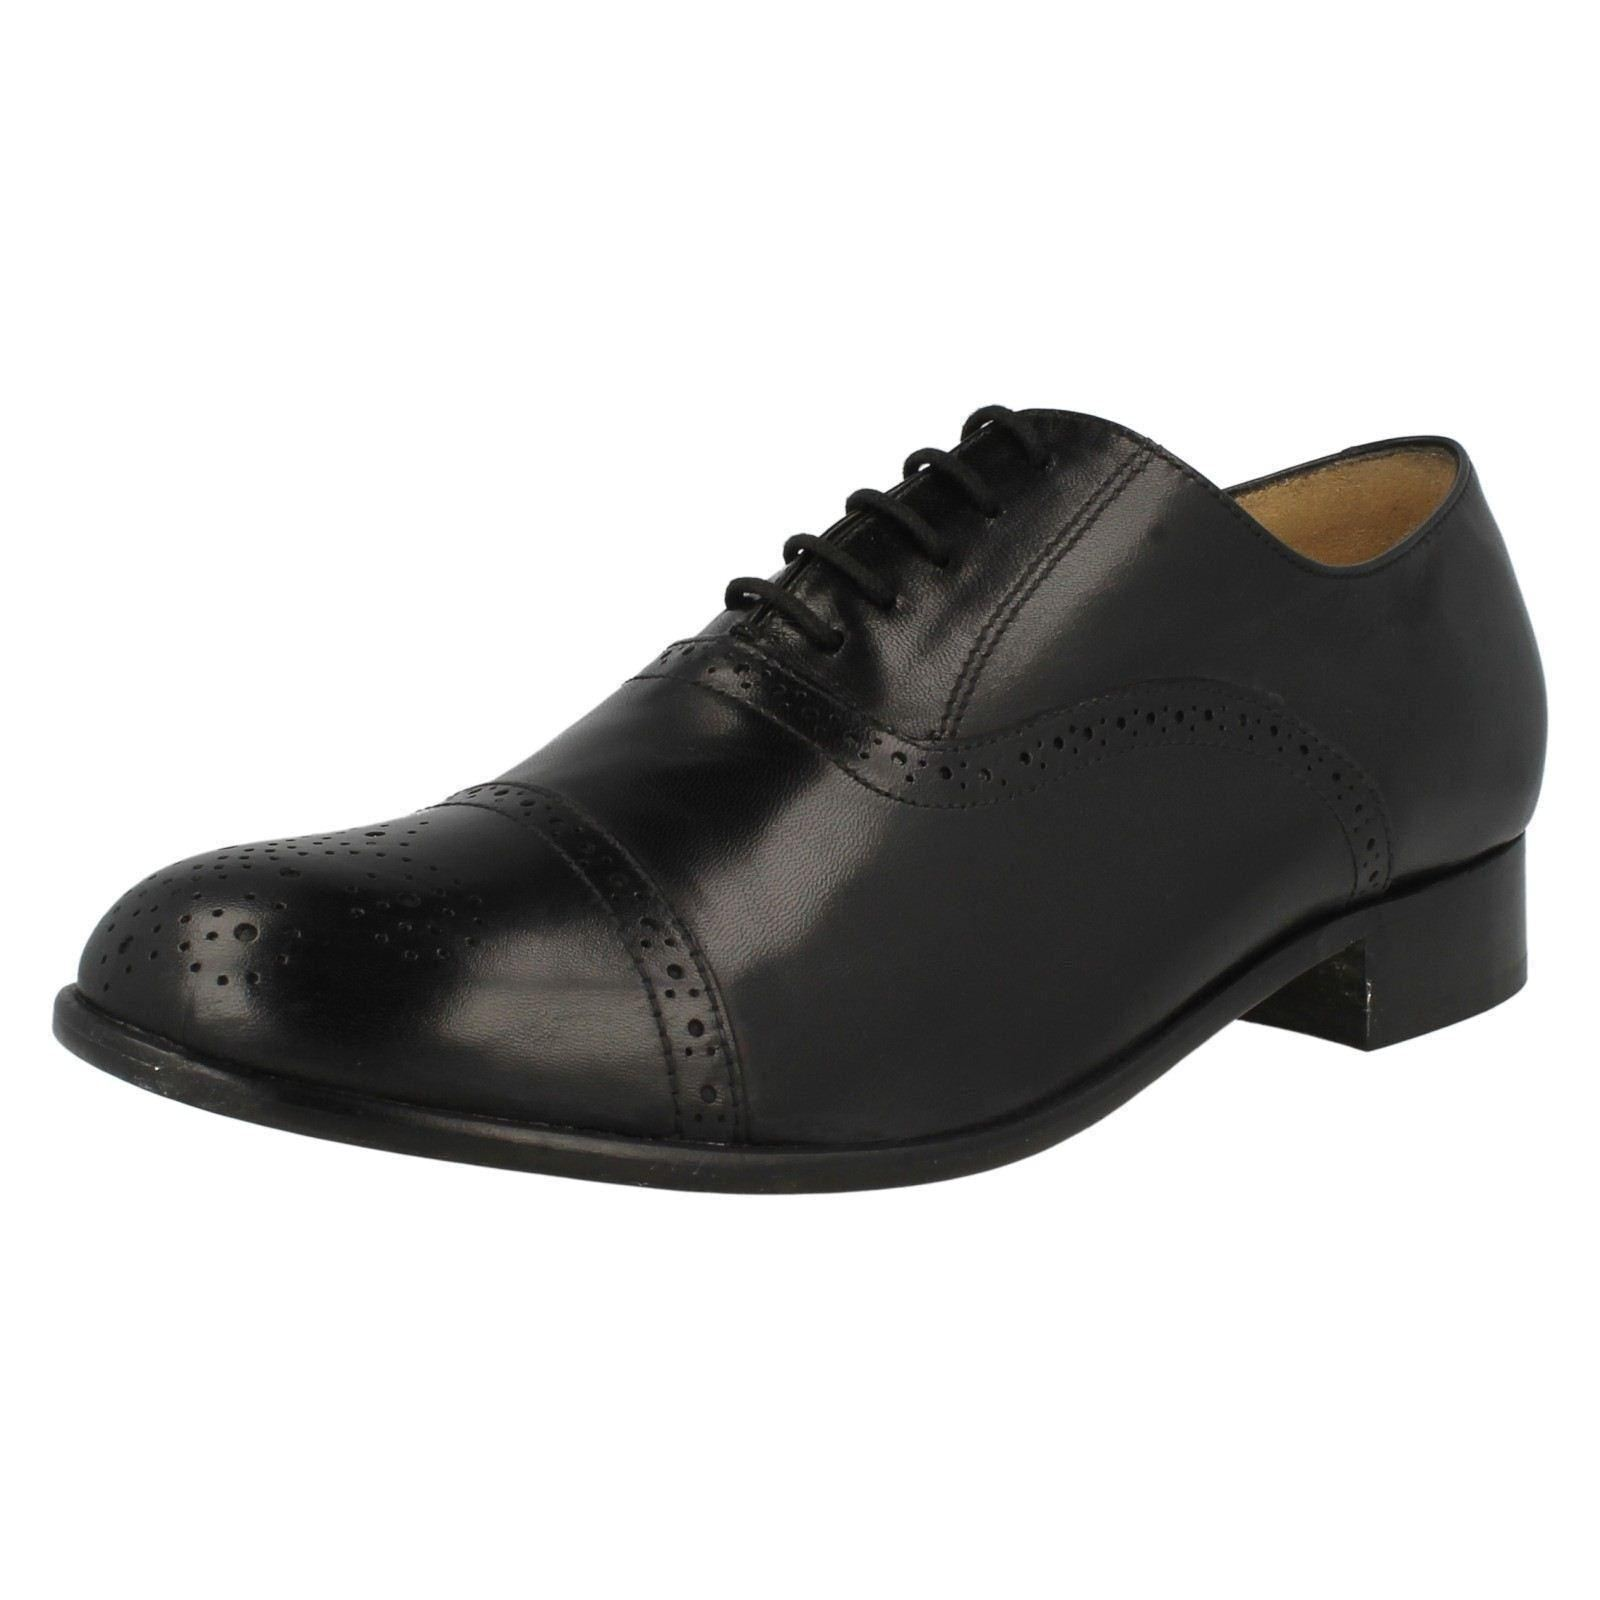 Thomas Blunt Brogue 'St Pancras' Gents Black Leather Semi Brogue Blunt Medallion Toe Shoes 4c2524